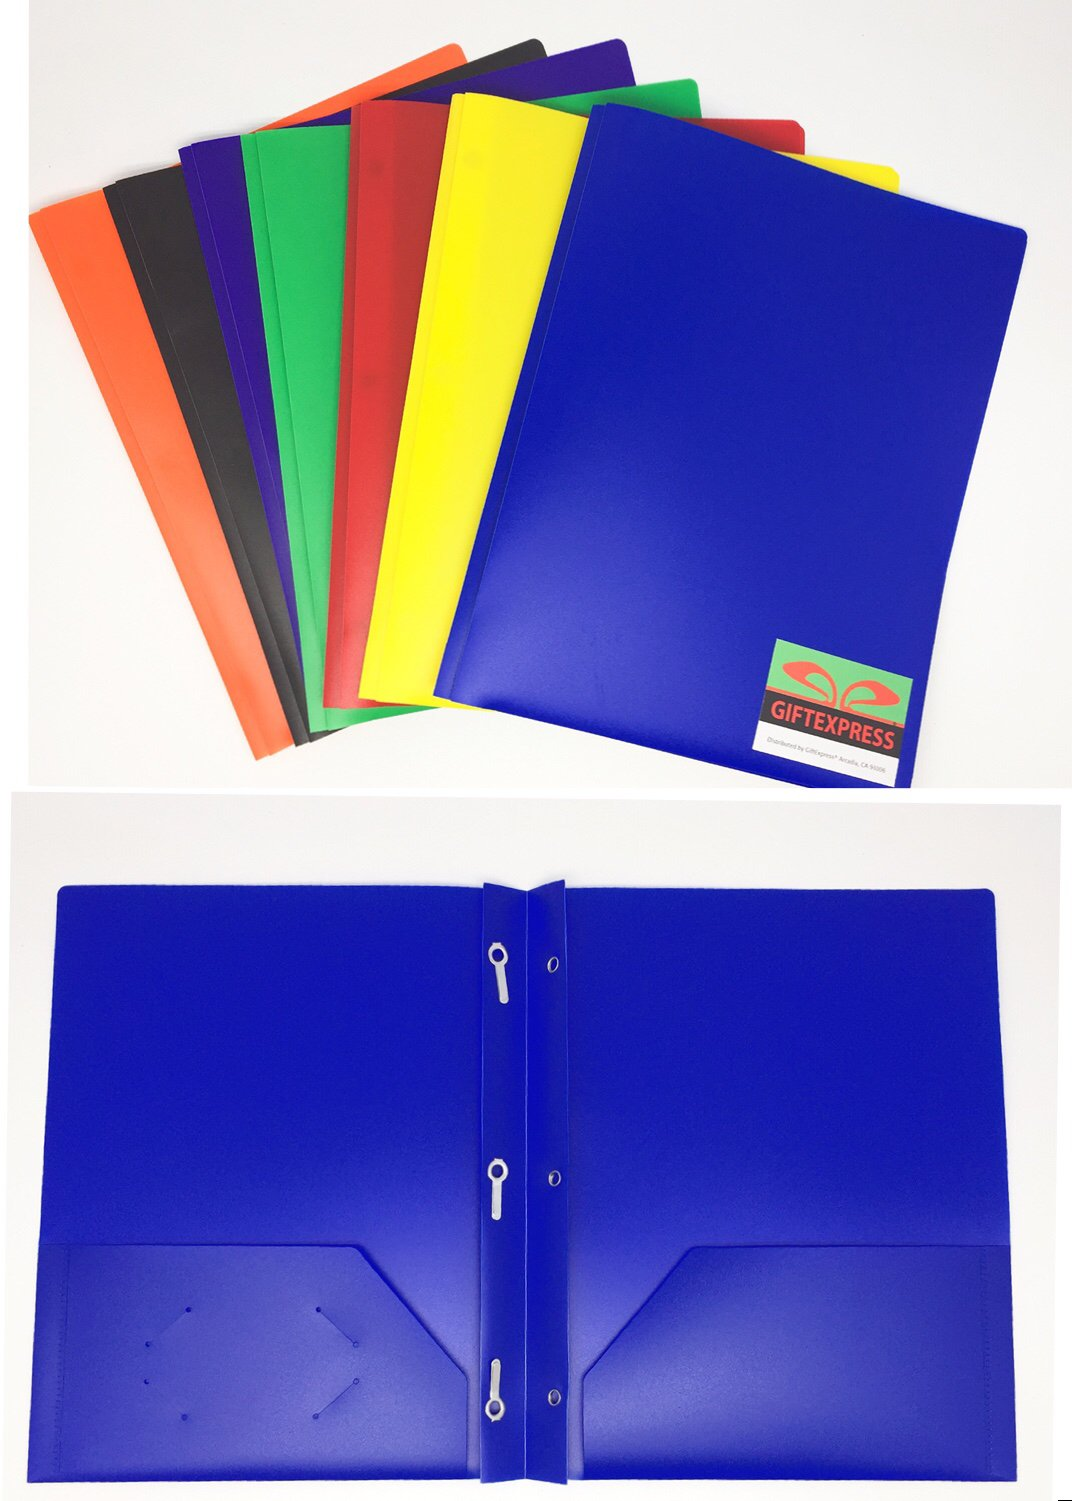 GIFTEXPRESS Pack of 6, Assorted Solid Color 3-prong Poly Portfolio with 2 Pockets, Two Pocket Poly File Folder, 3 hold plastic folder-Strong and Durable Plastic